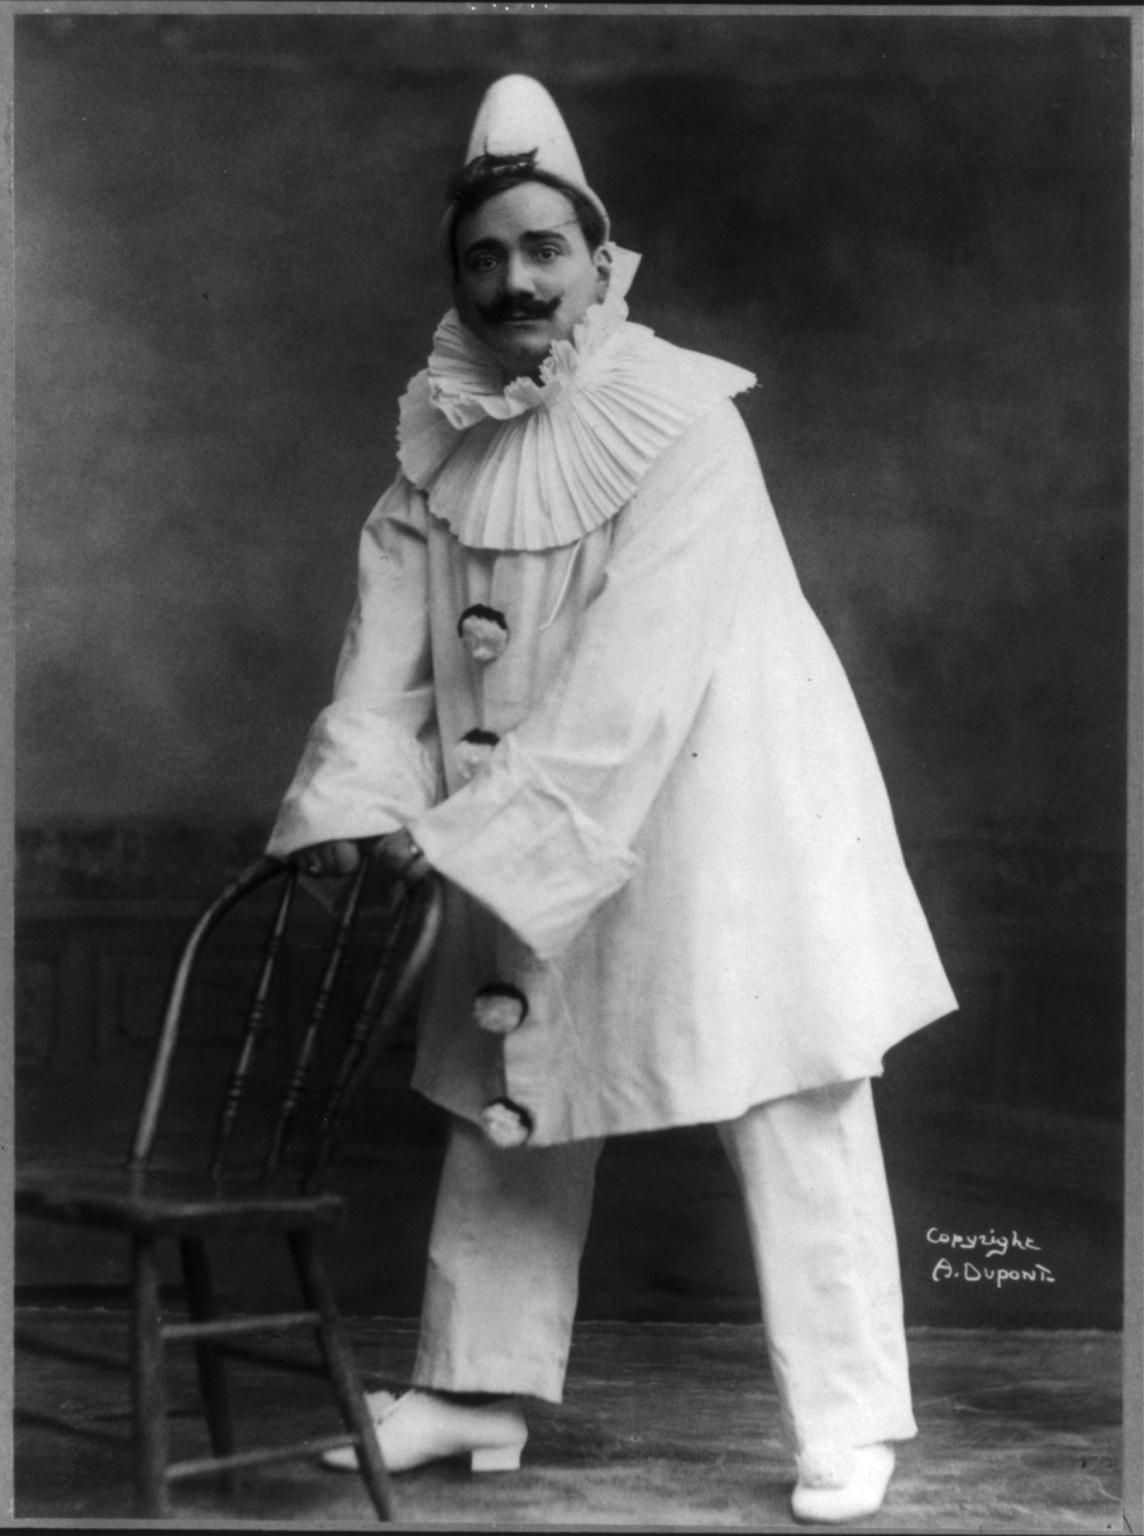 Depiction of Pagliacci